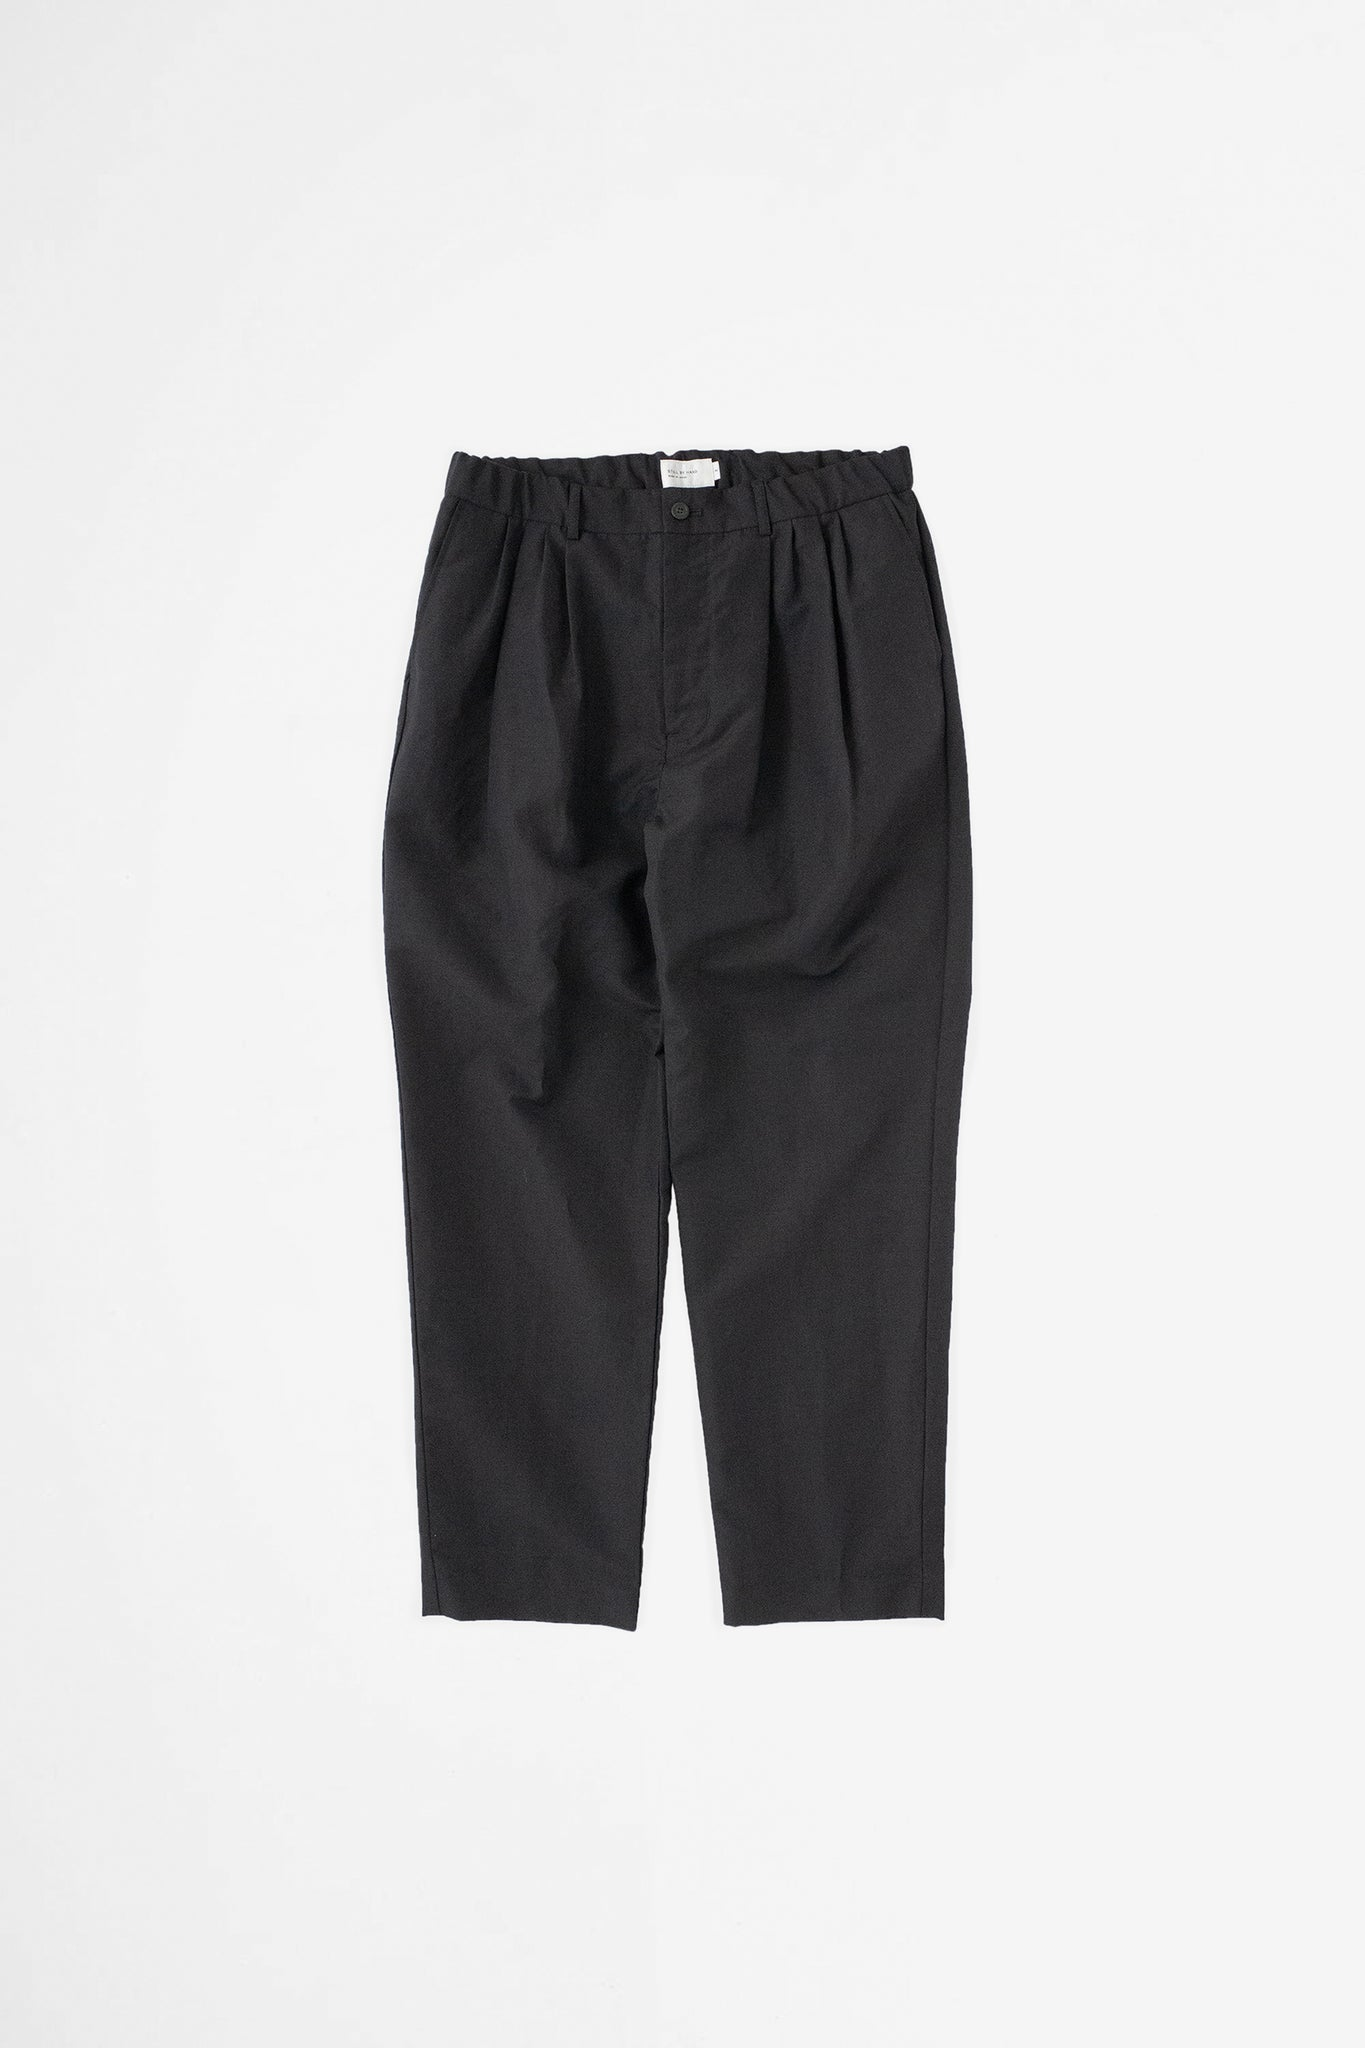 4 Tuck pants black